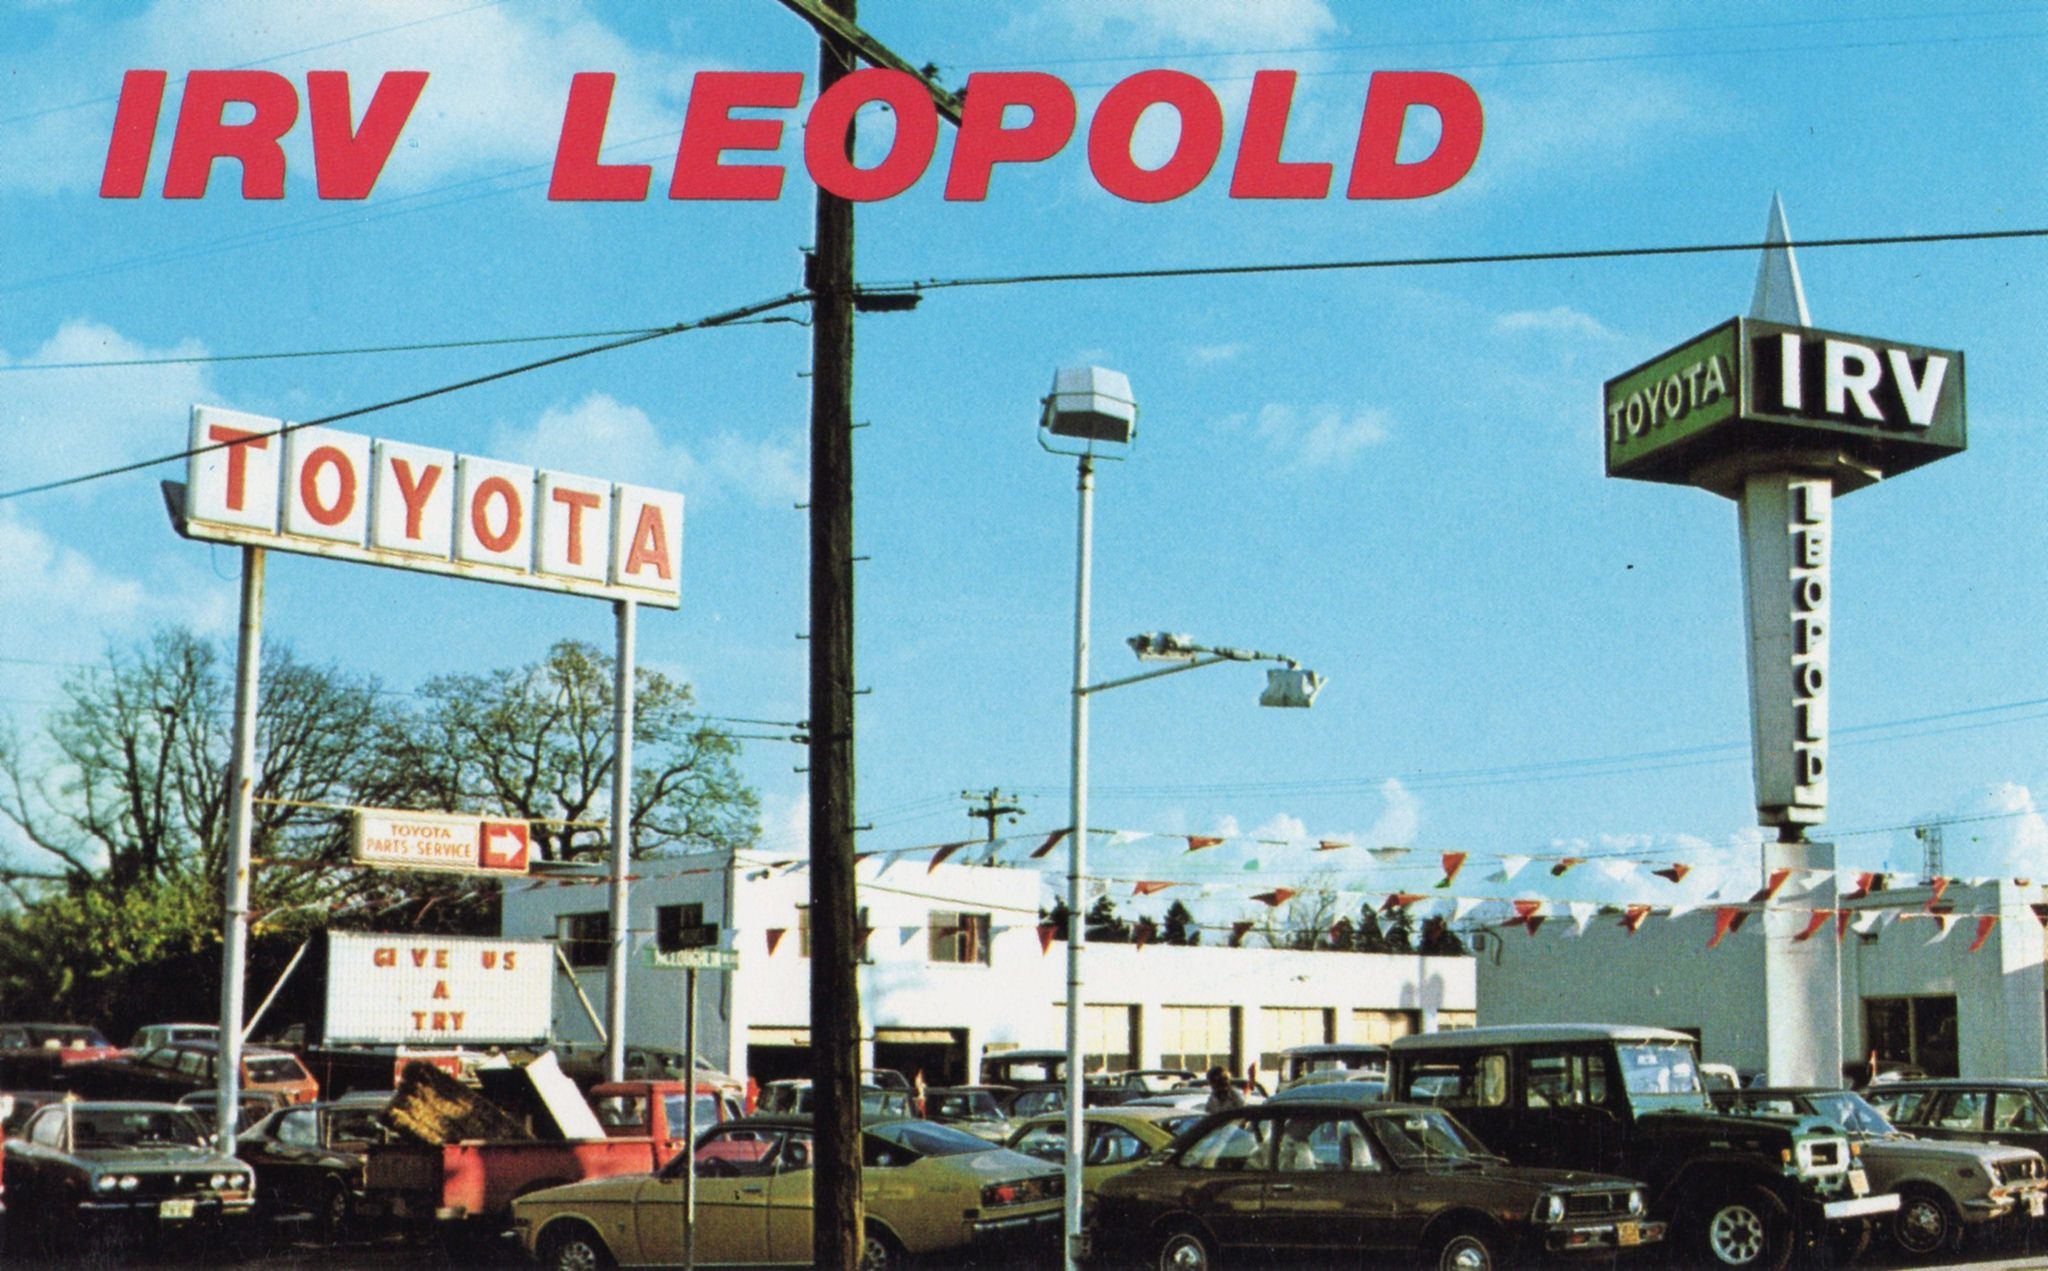 Irv Leopold Cause Irv Really Cares Toyota Dealership Car Dealership Toyota